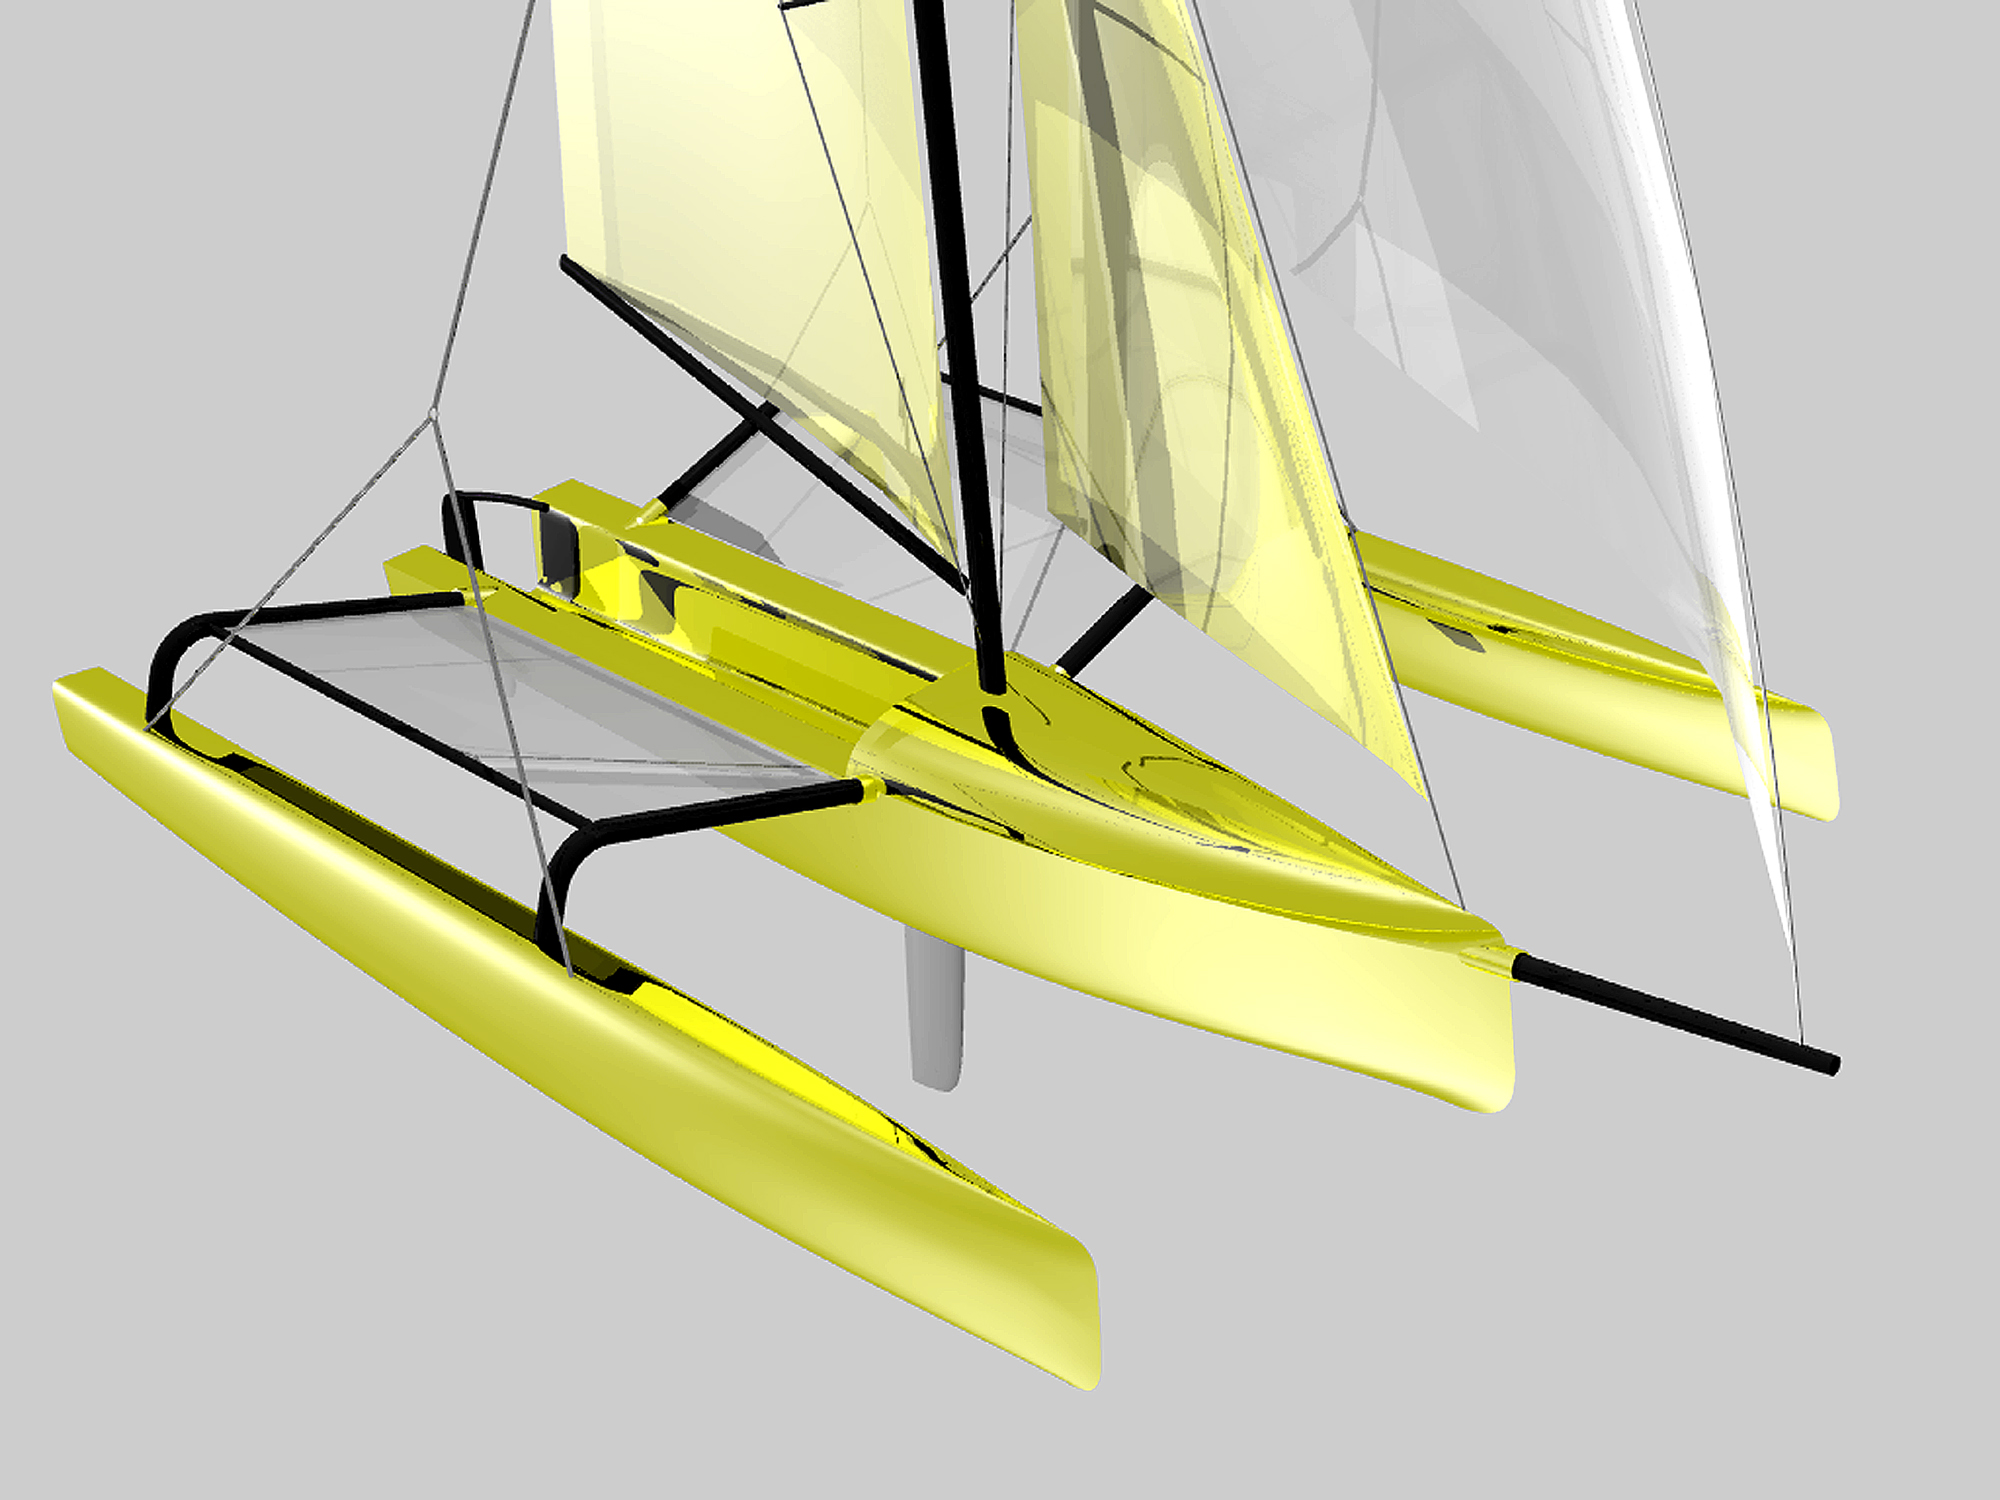 Plywood Catamaran Sailboat Plans